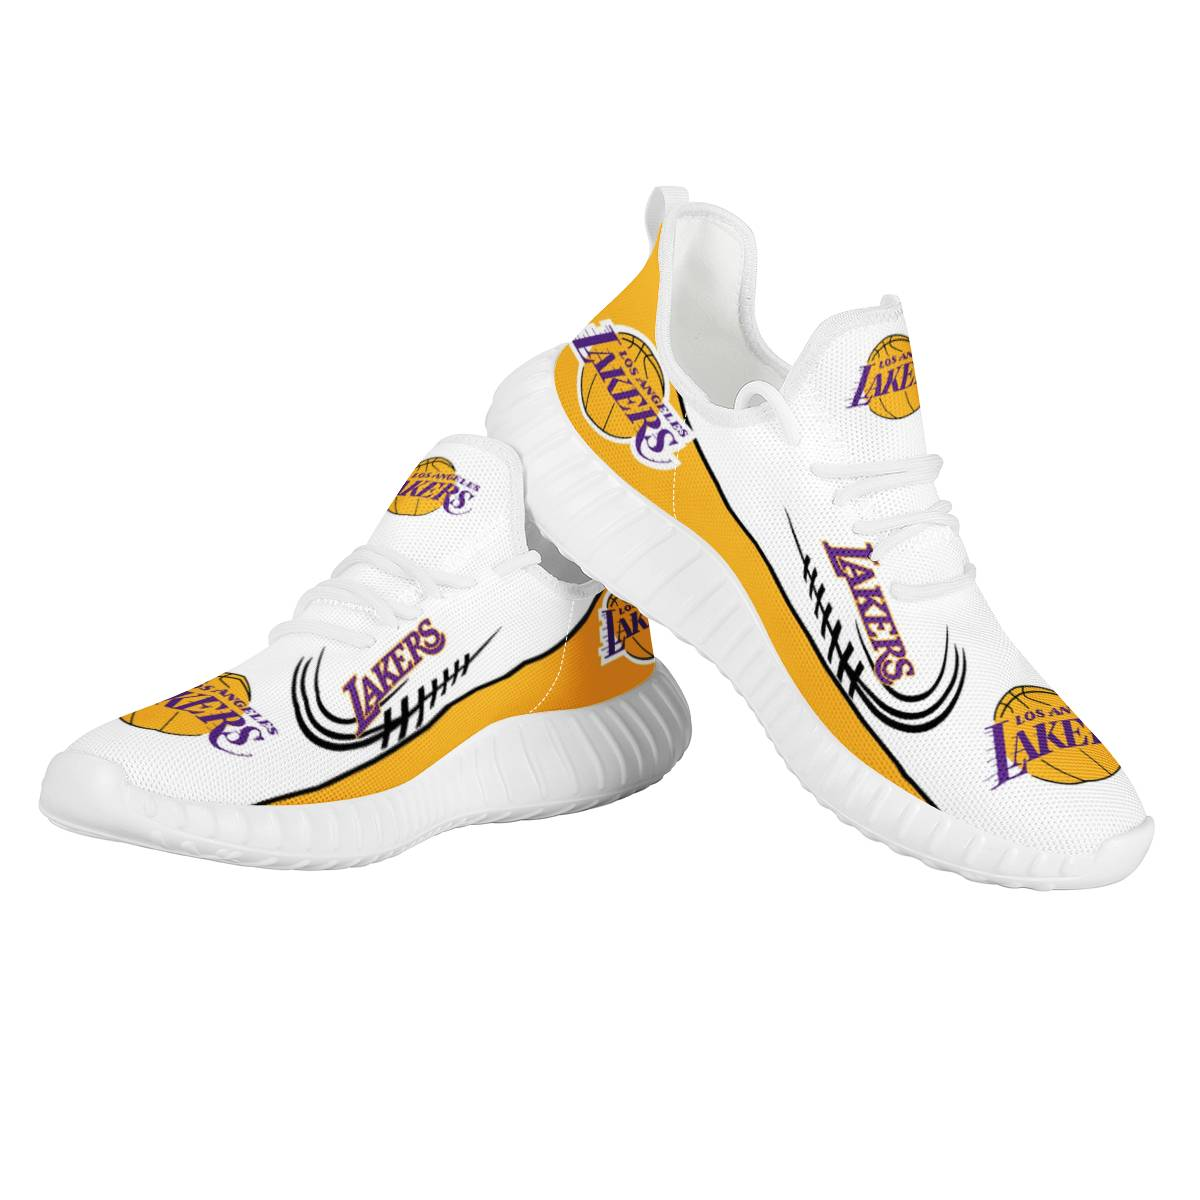 Women's Los Angeles Lakers Mesh Knit Sneakers/Shoes 003